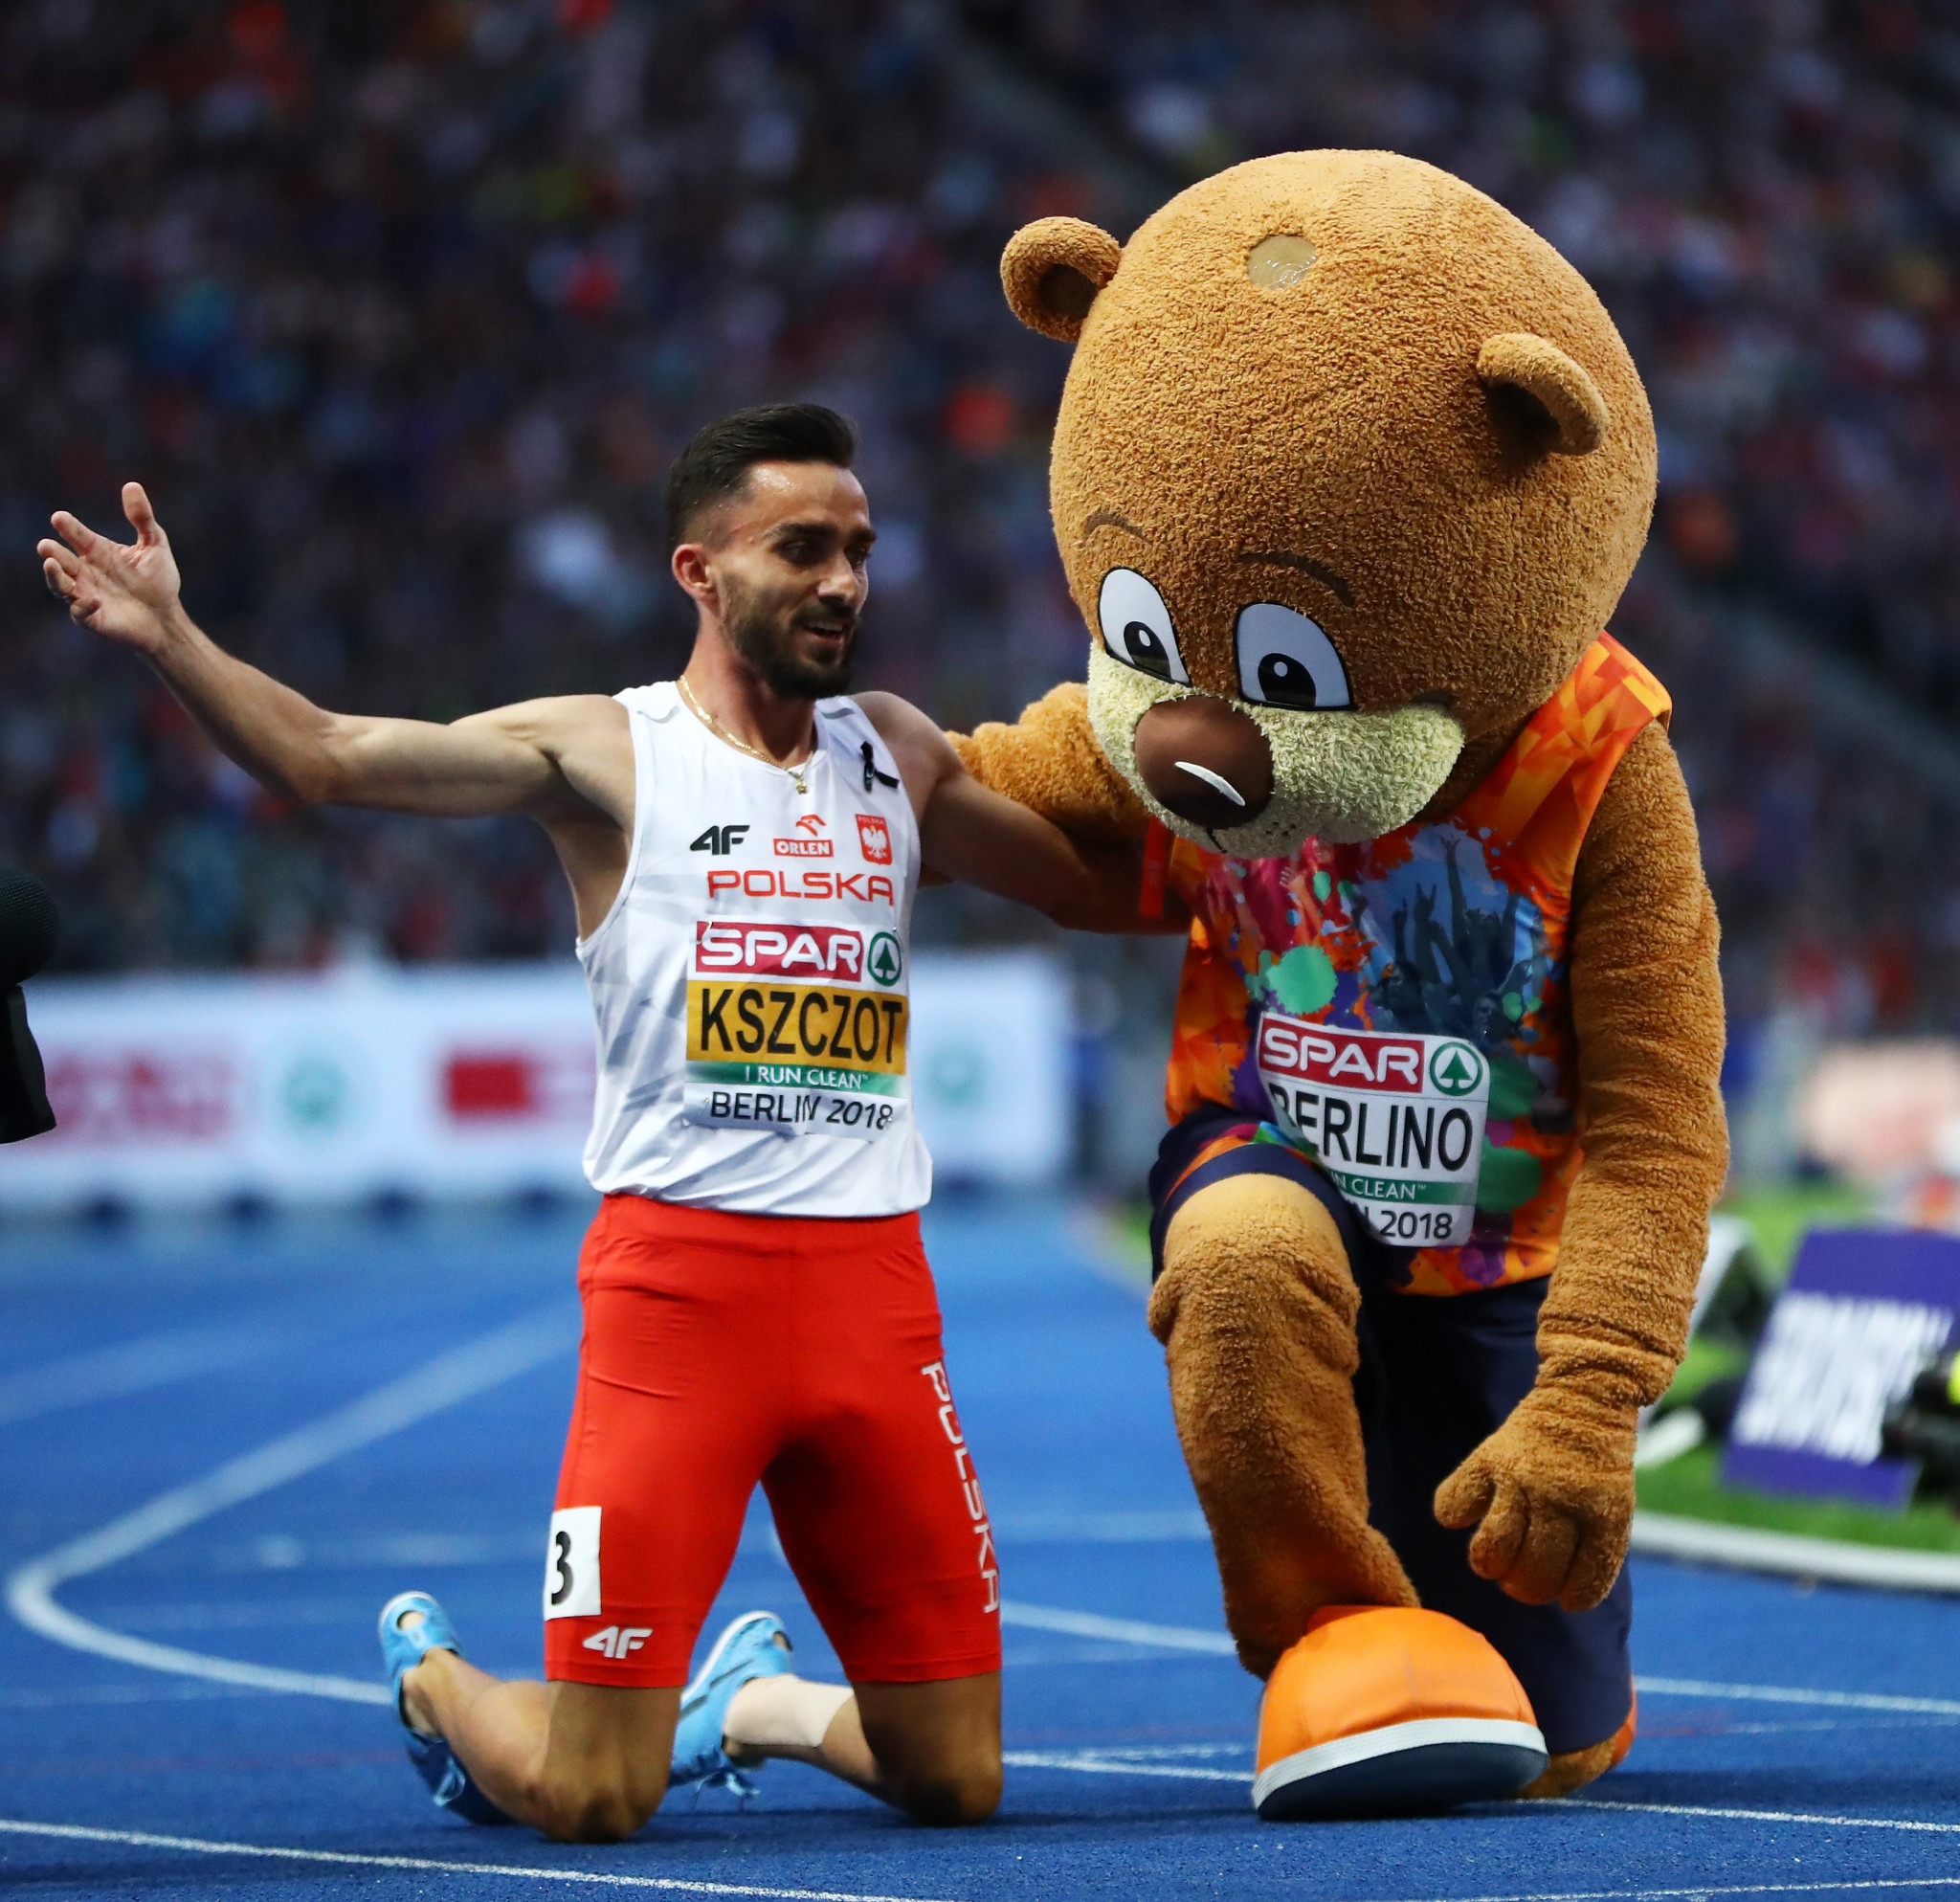 insidethegames is reporting LIVE from the 2018 European Championships in Glasgow and Berlin